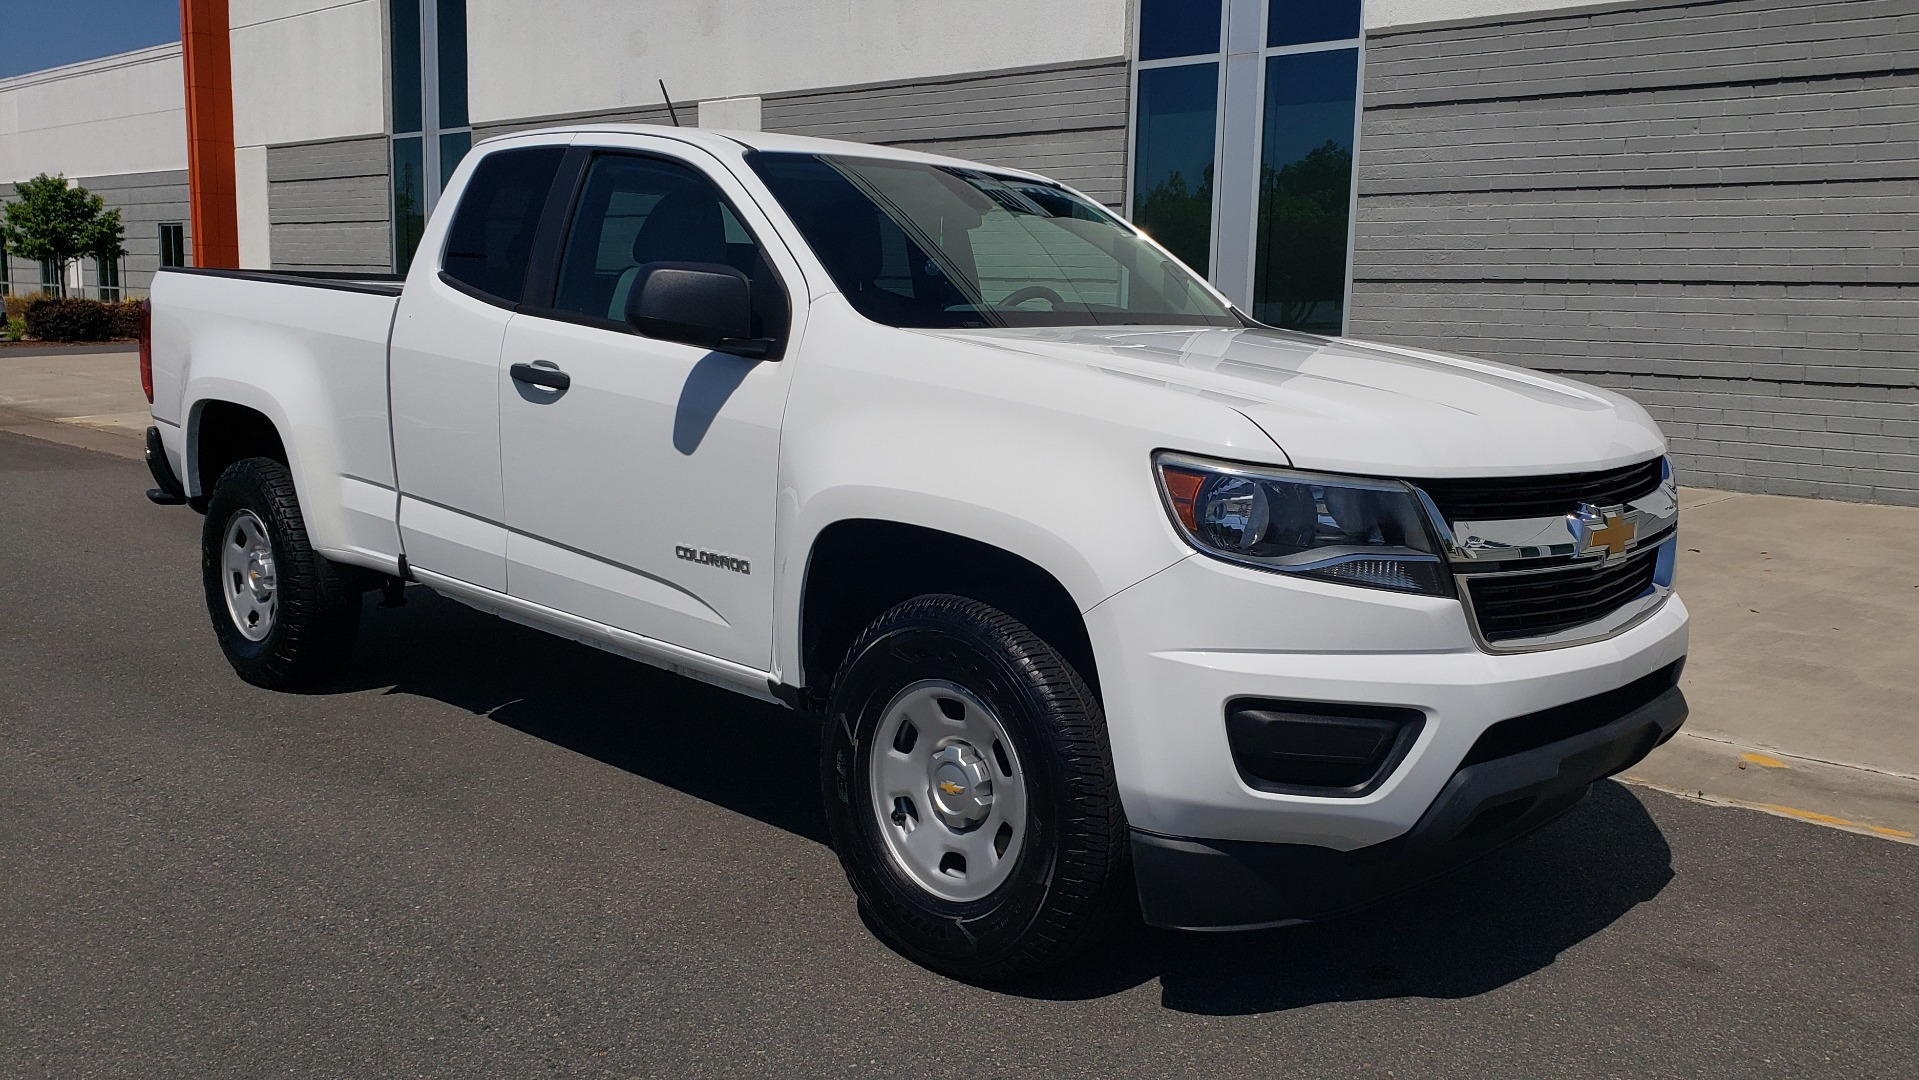 Used 2016 Chevrolet COLORADO 2WD WT / EXT CAB / 128.3 WB / 4-CYL / 6-SPD AUTO / REARVIEW for sale Sold at Formula Imports in Charlotte NC 28227 6